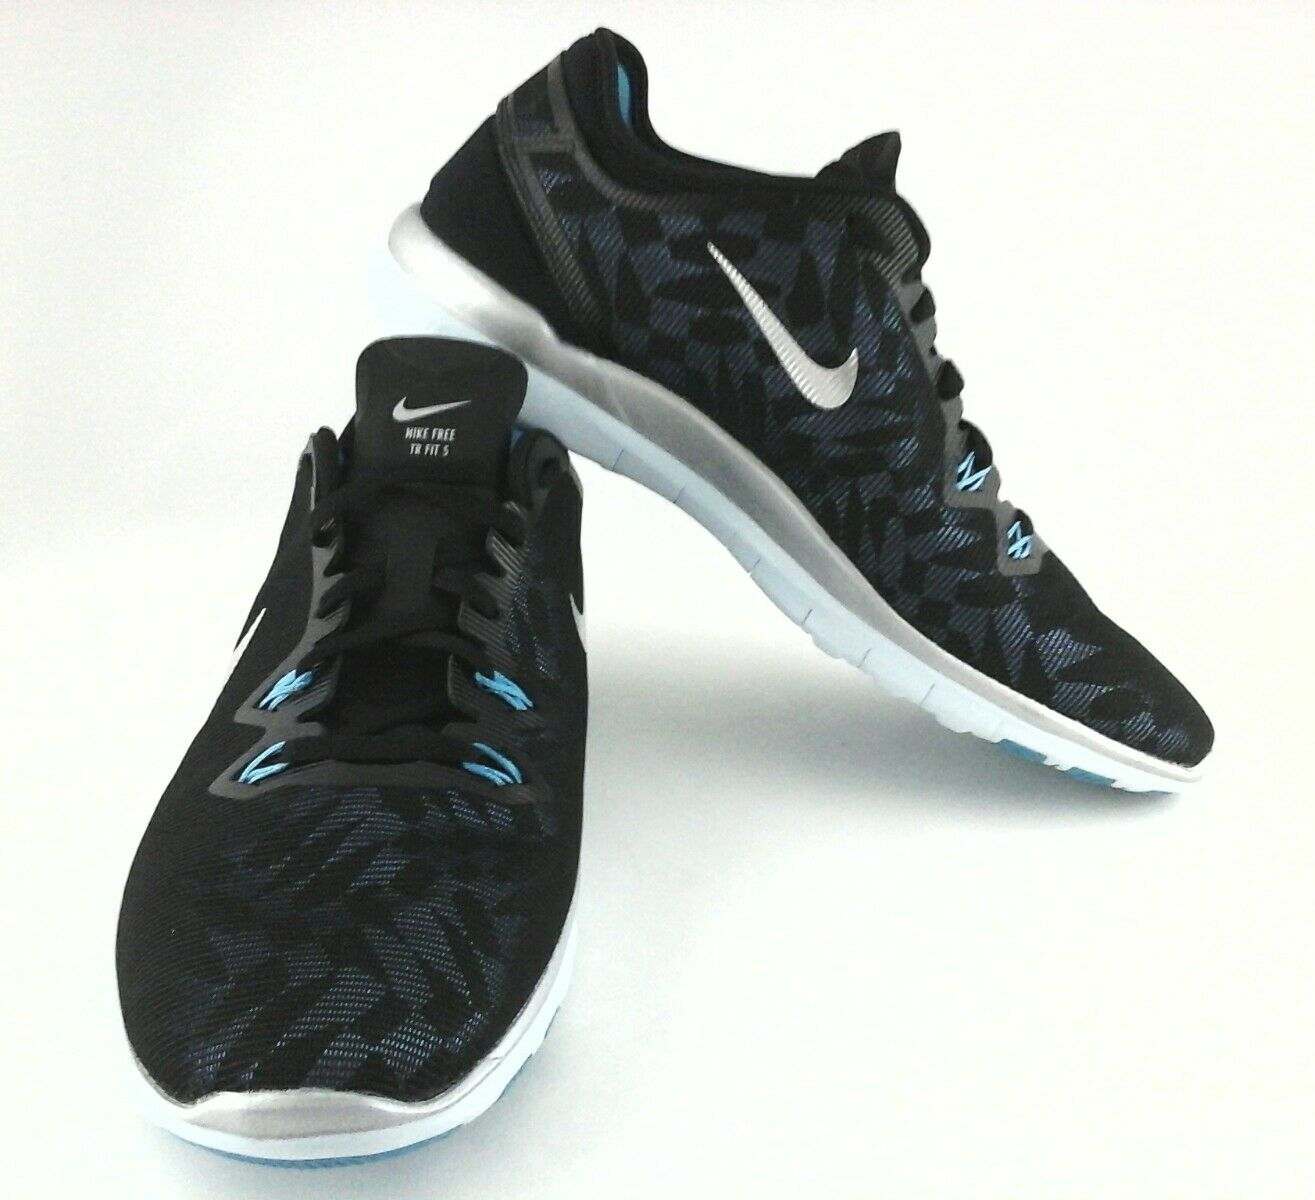 NIKE FREE 5.0 SNEAKERS Shoes Running Blue/Black/Silver Geometric Womens US 10/42